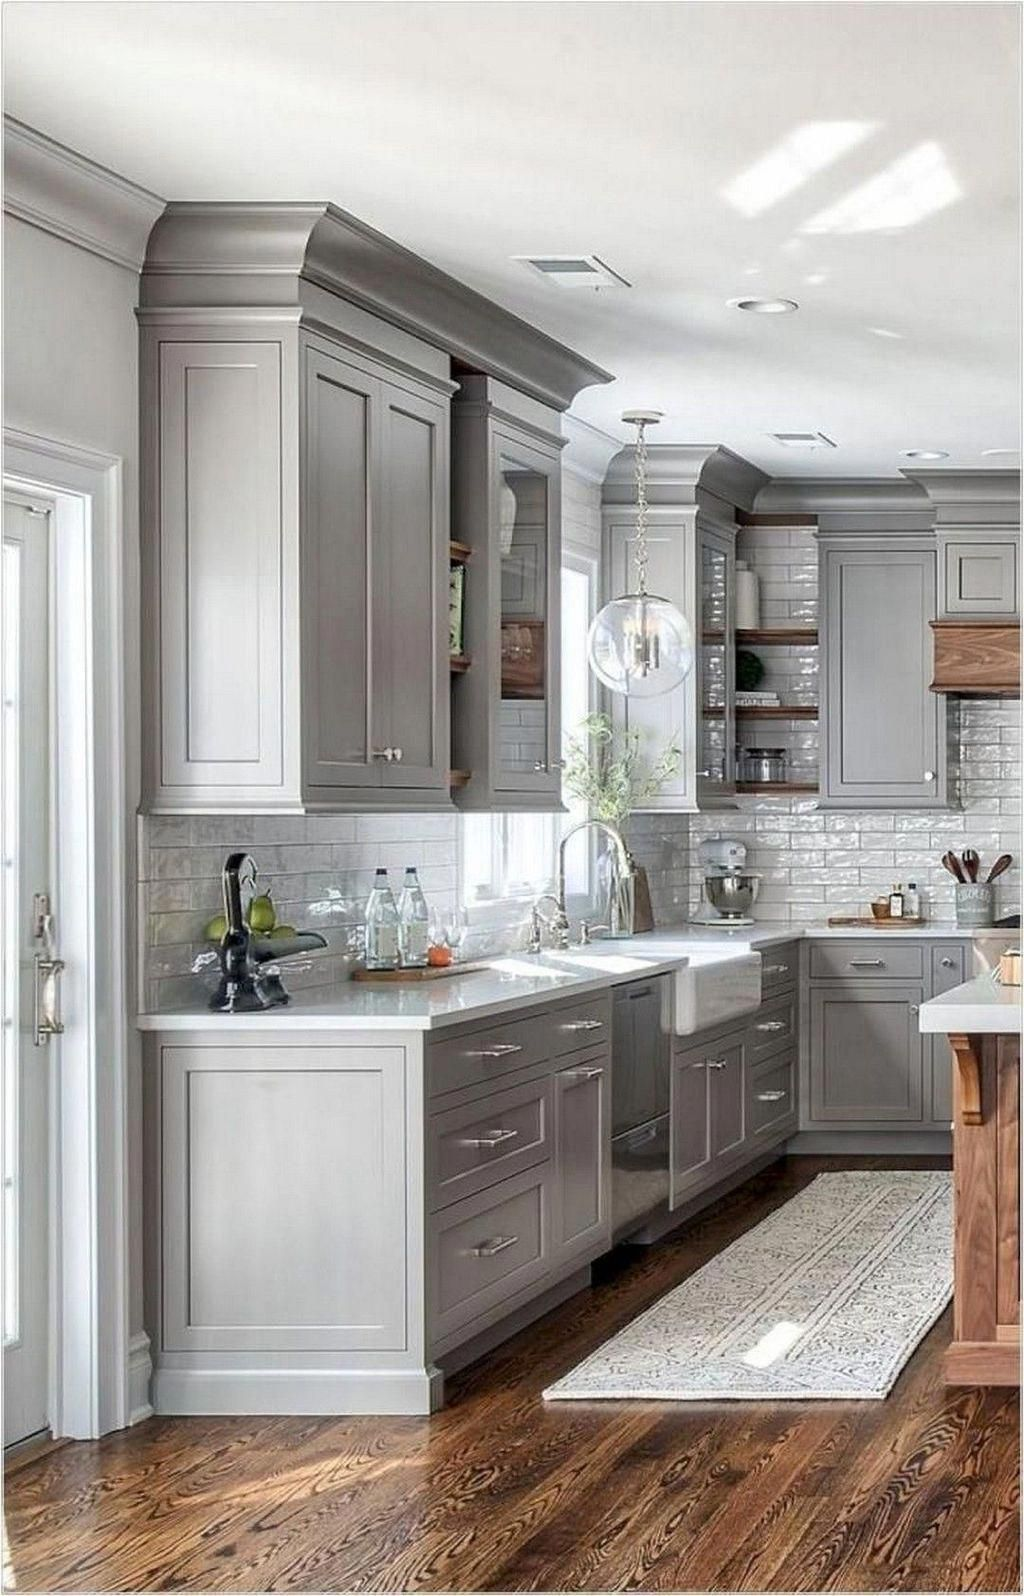 Check Out Here Kitchen Paint Ideas In 2020 Modern Kitchen Cabinet Design Modern Farmhouse Kitchens Farmhouse Kitchen Backsplash